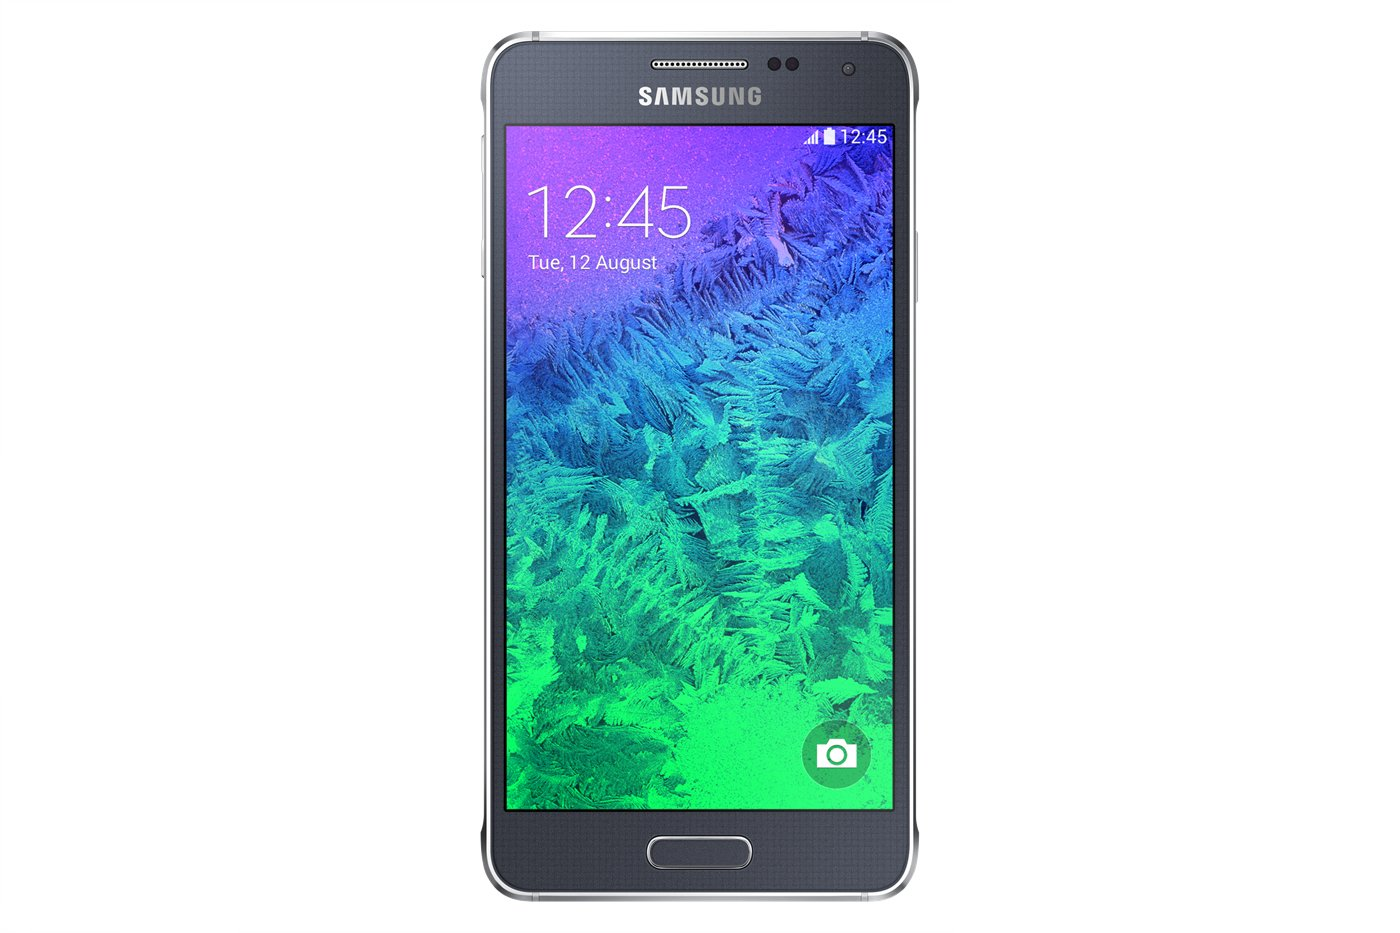 Samsung Galaxy Alpha Smartphone / Bild: Amazon.de